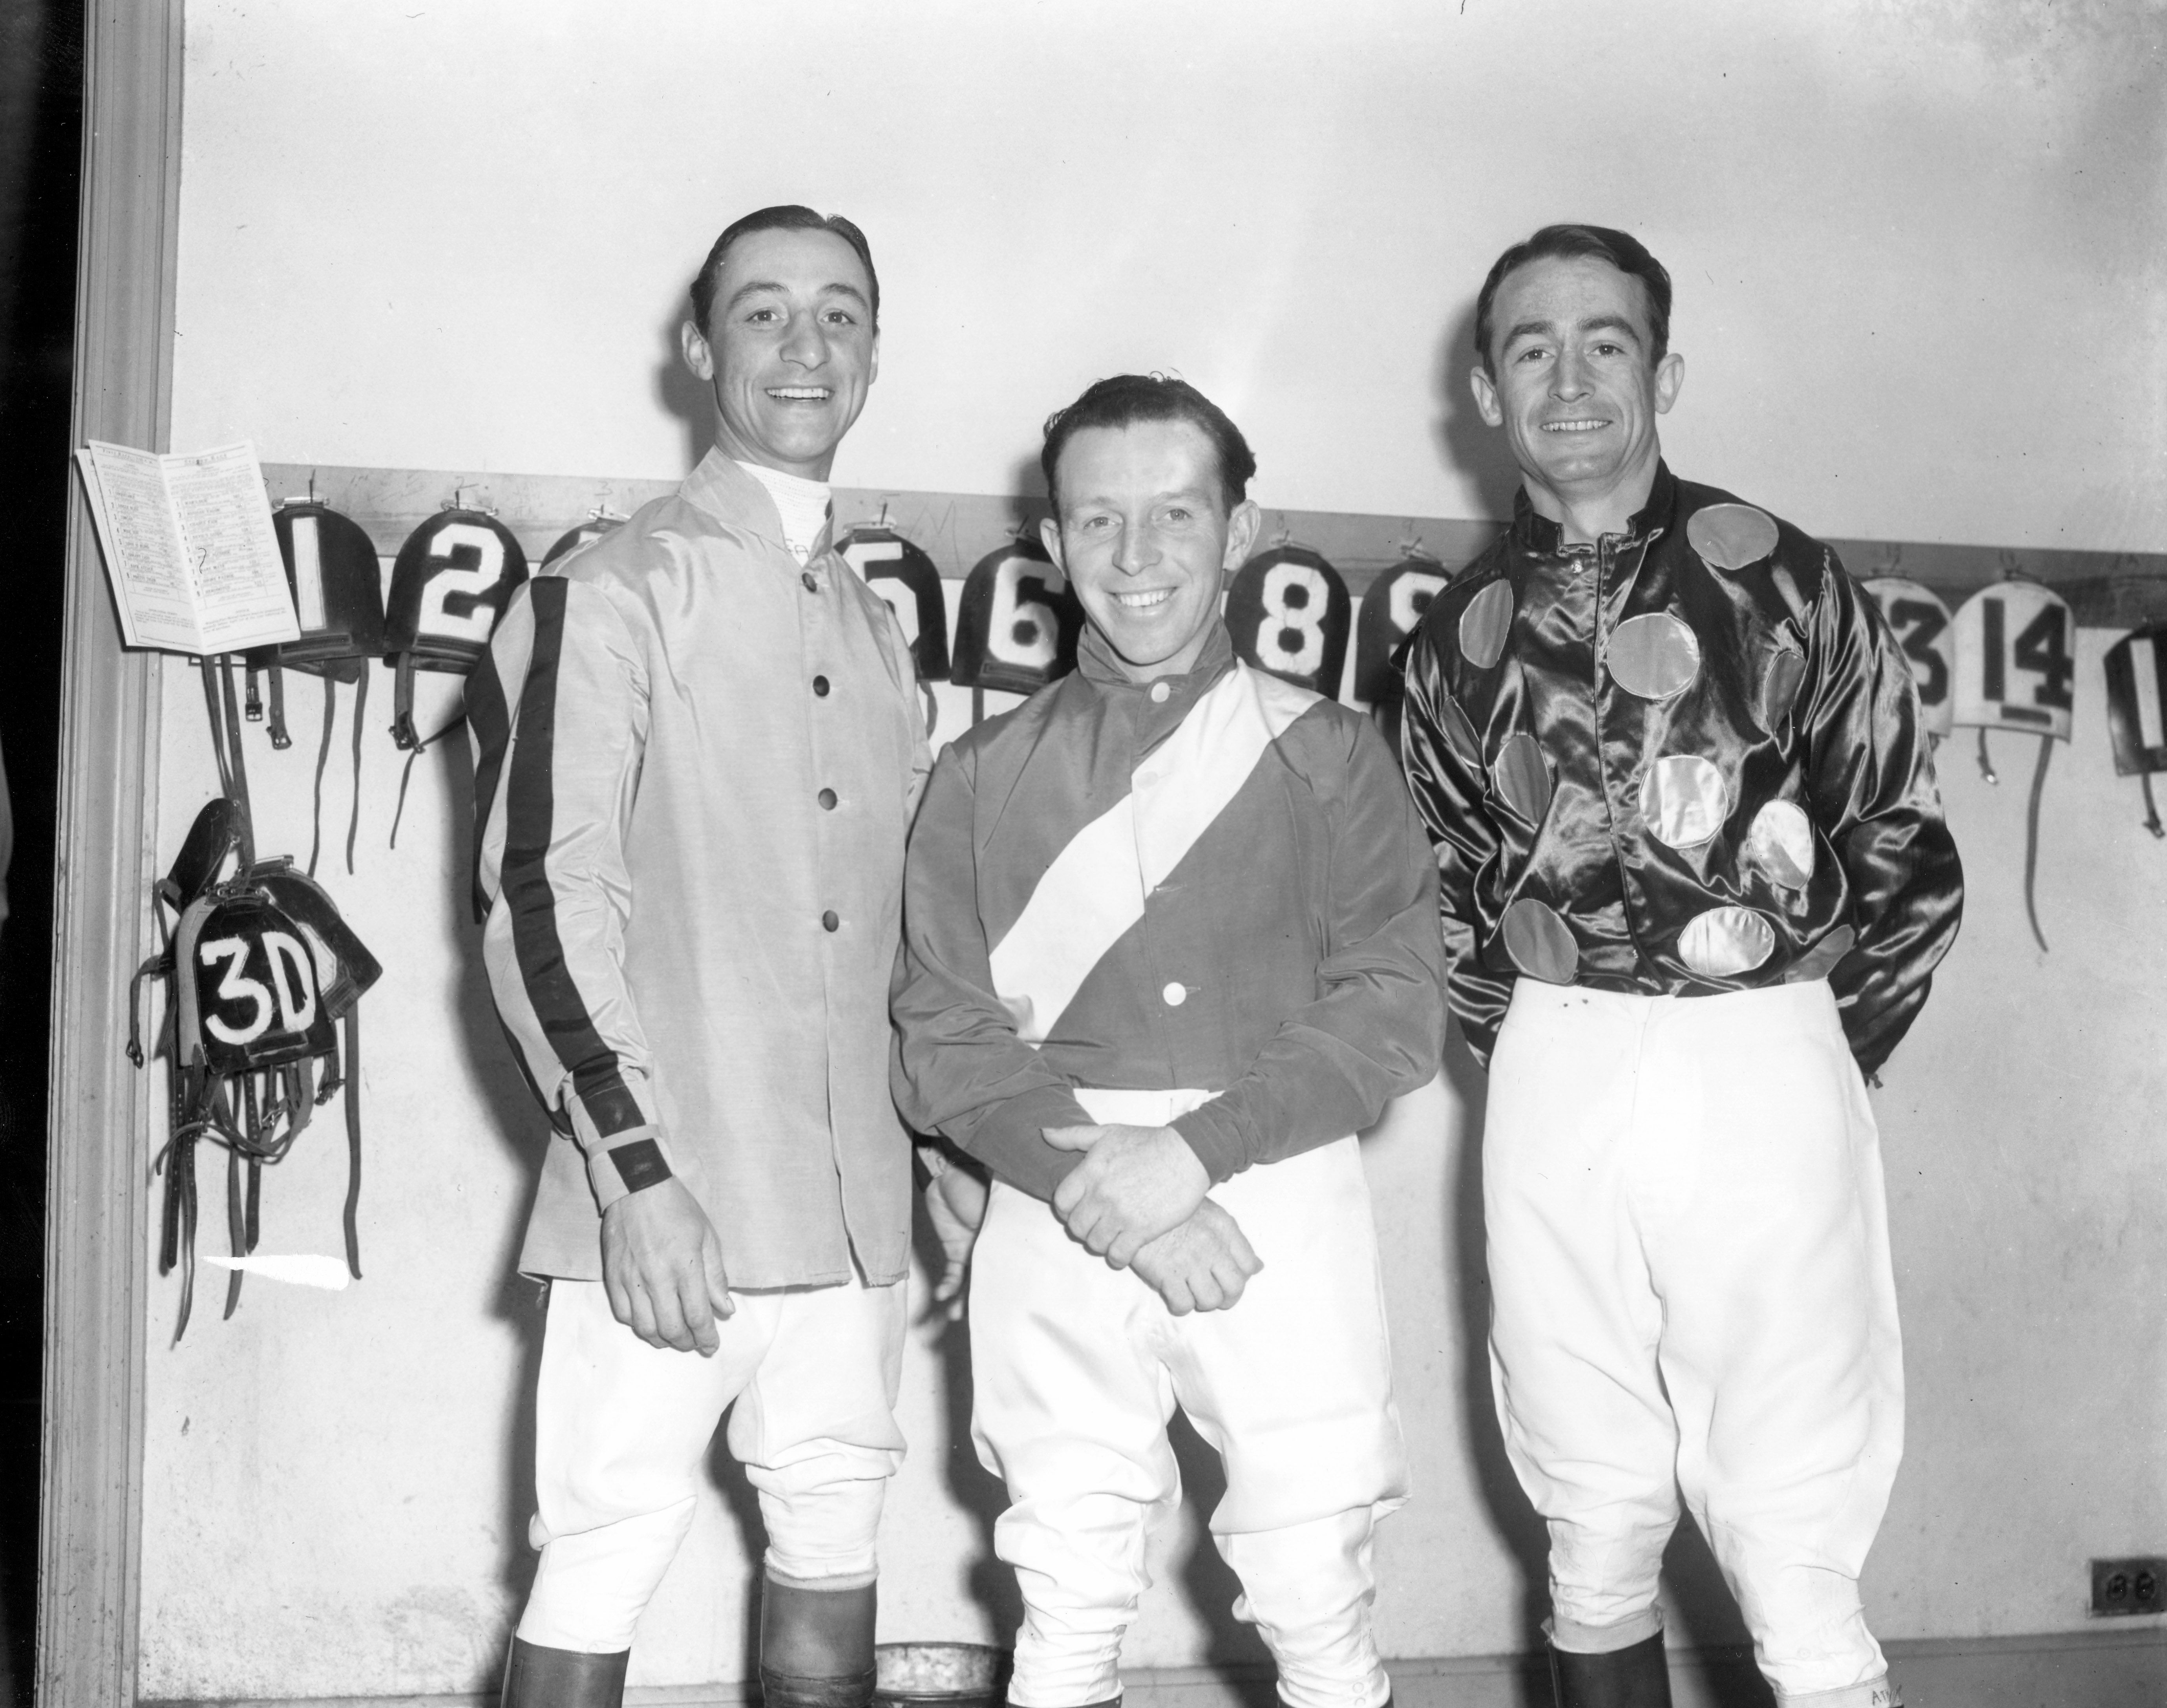 Eddie Arcaro, John Adams and Ted Atkinson in the jock's room (Keeneland Library Morgan Collection/Museum Collection)